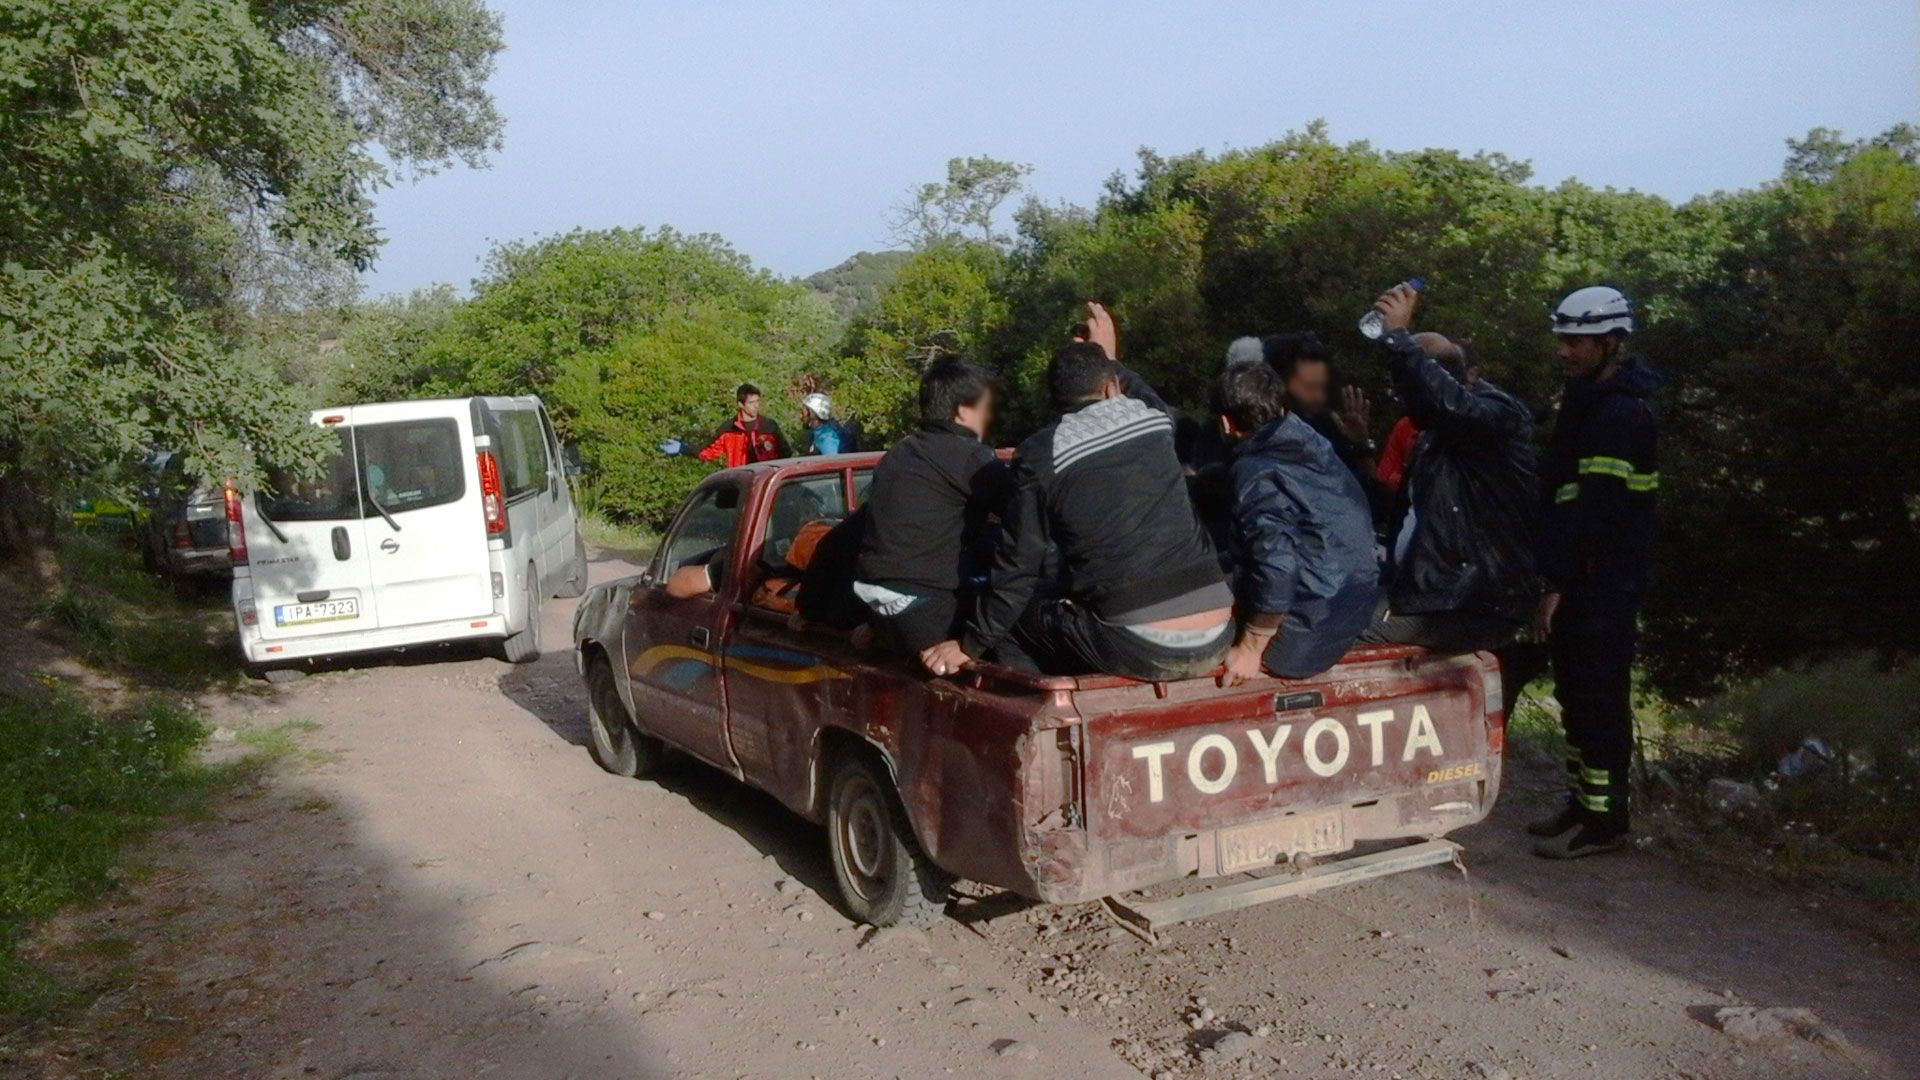 Refugees-and-Migrants-in-a-farmers-truck